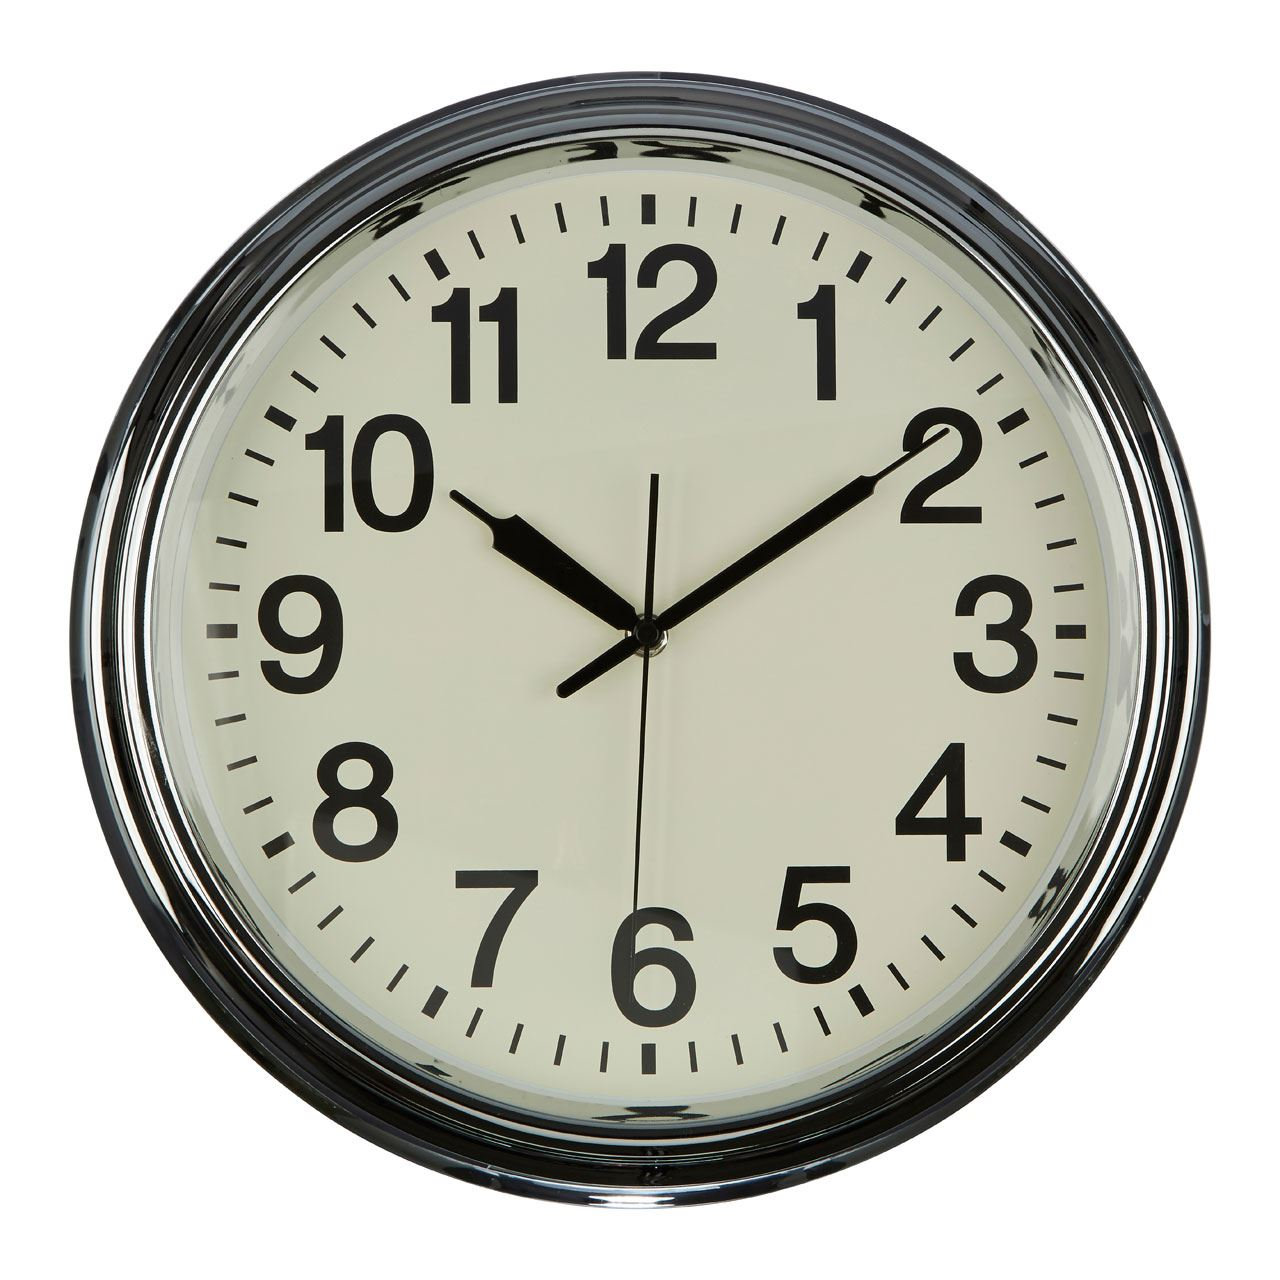 Wall Clock Cream Face Black Numbers & Hands Chrome/Copper Finish ...